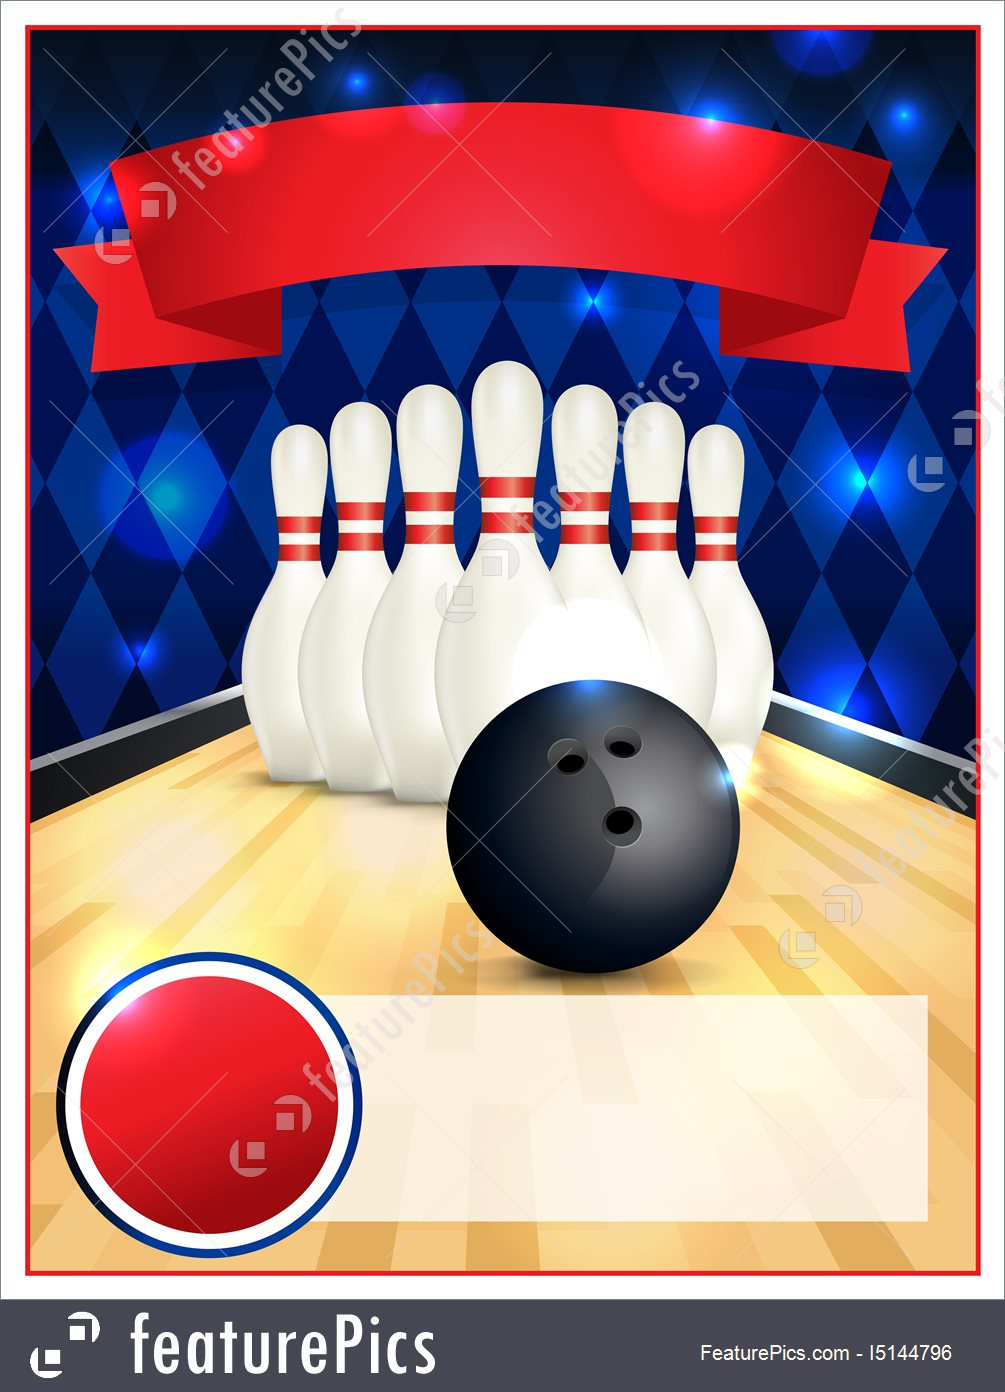 Bowling Party Invitation Template | Hunecompany - Free Printable Bowling Invitation Templates